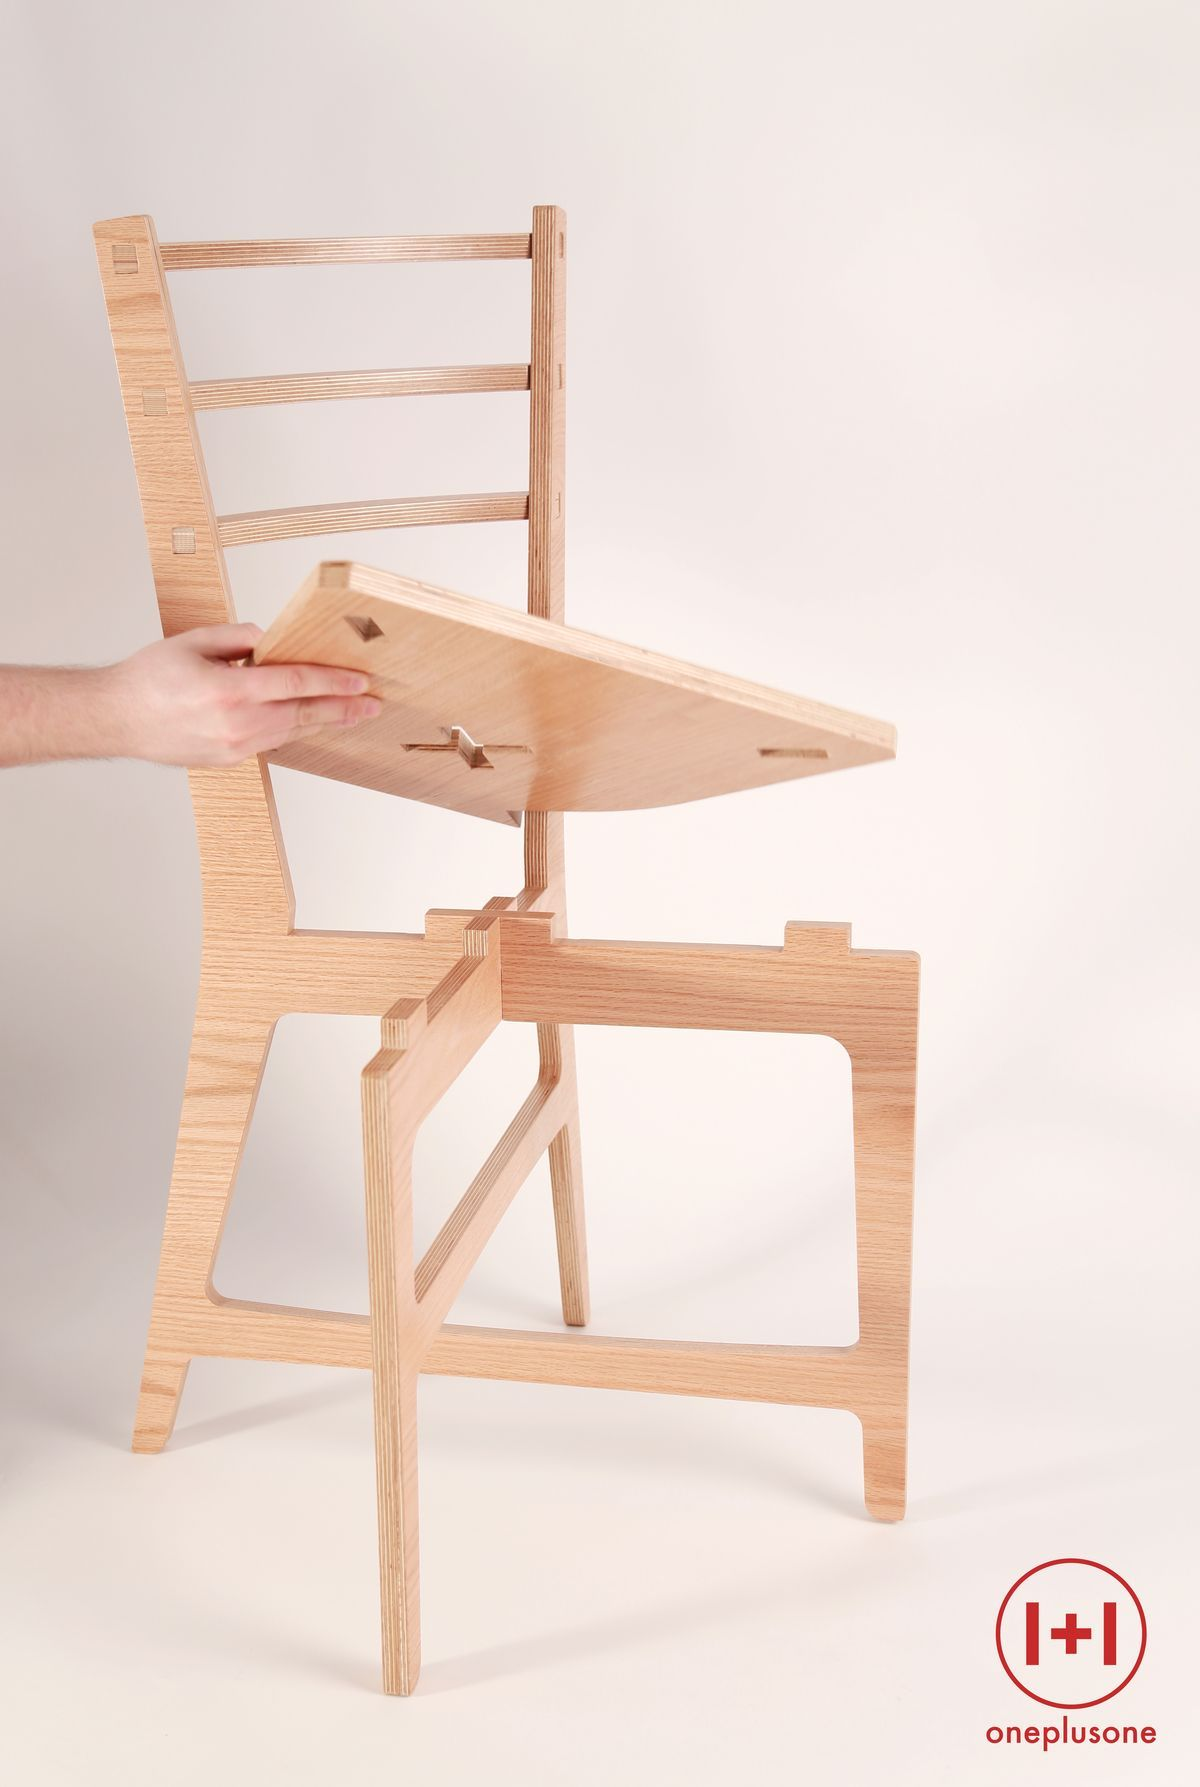 CNC cut plywood chair with no need of glue or fixation bolts just clipping the parts by pressure fitting Manufactured at the Fab Lab Barcelona